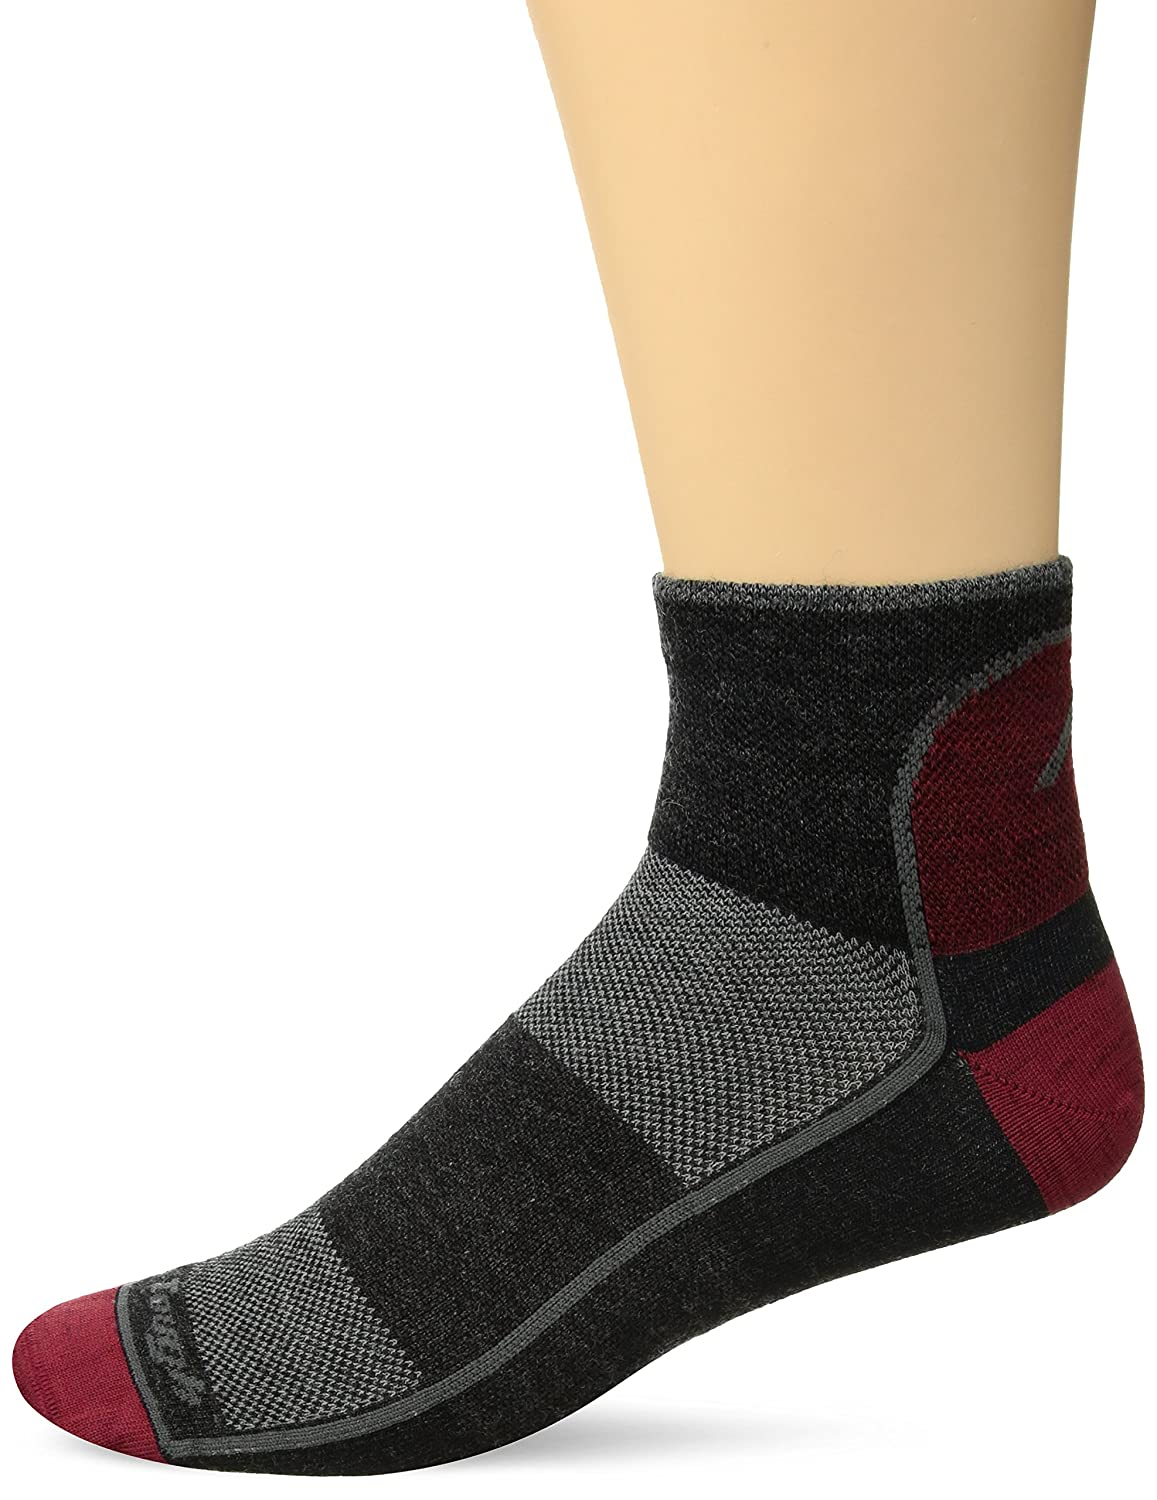 Darn Tough Men's 1/4 Athletic Socks, Merino Wool - 6 Pack Special Darn Tough Vermont